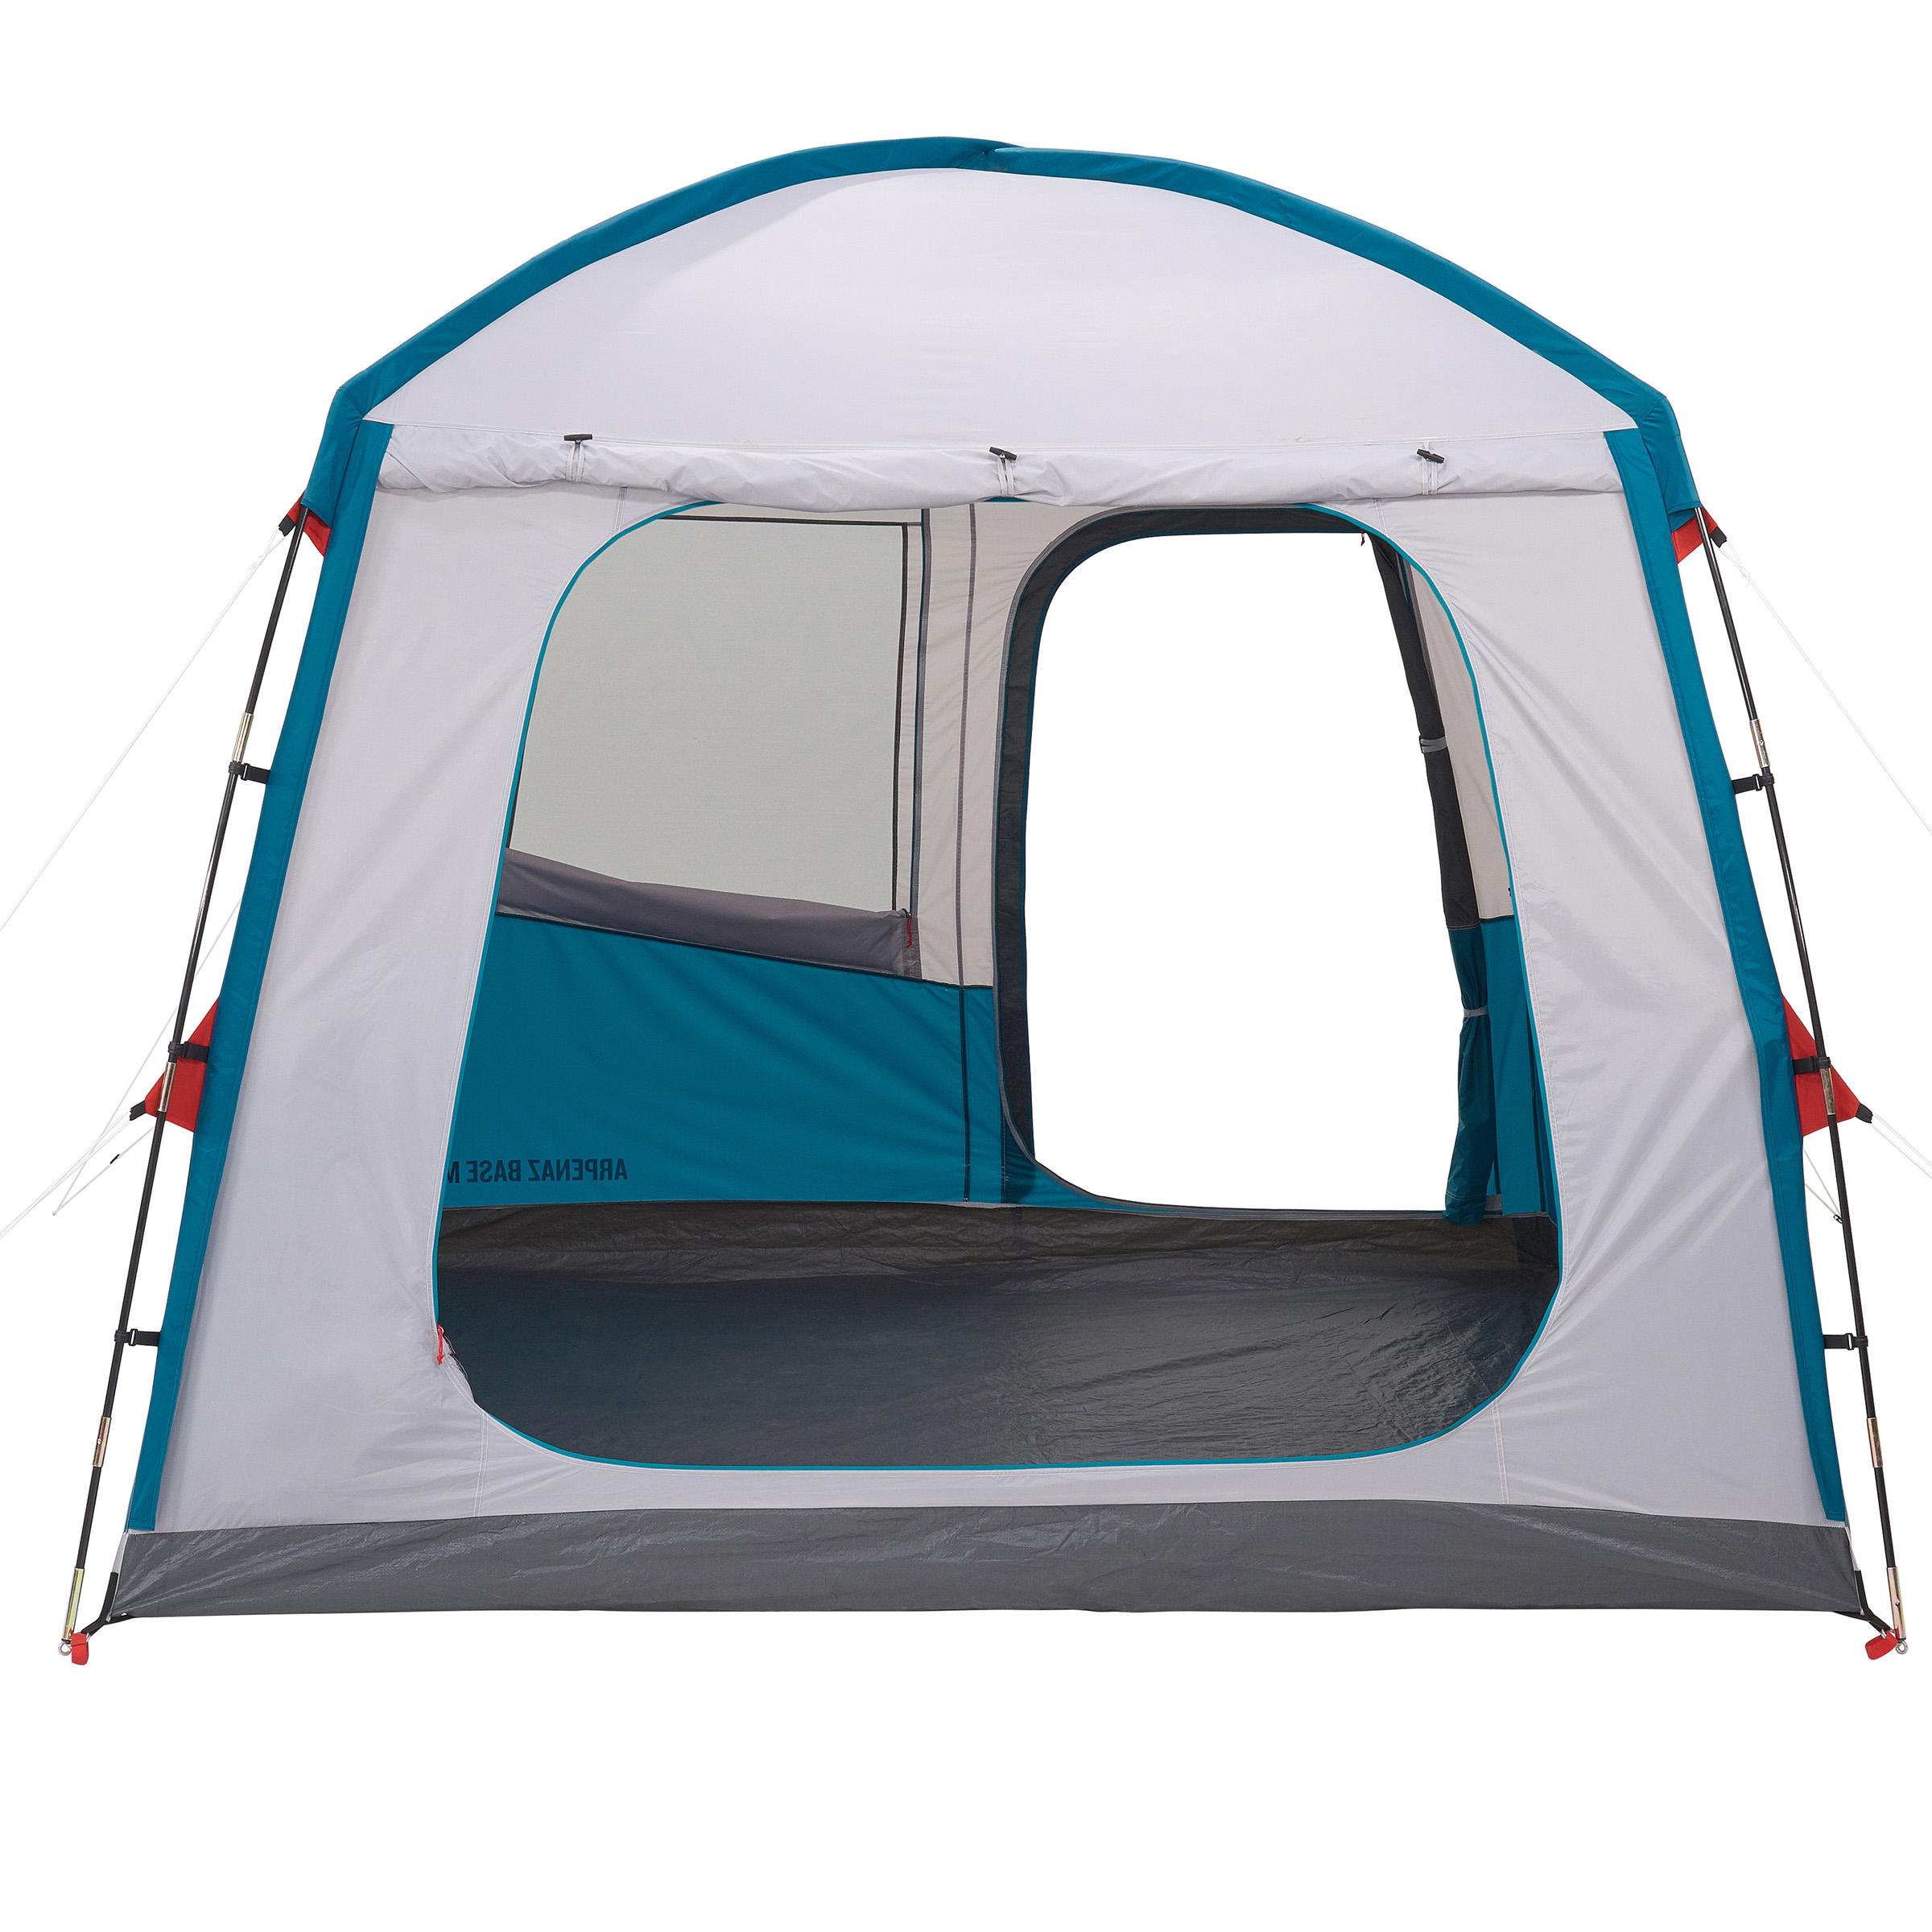 BASE ARPENAZ M Pole-Supported Camping Living Area _PIPE_ 6-Person